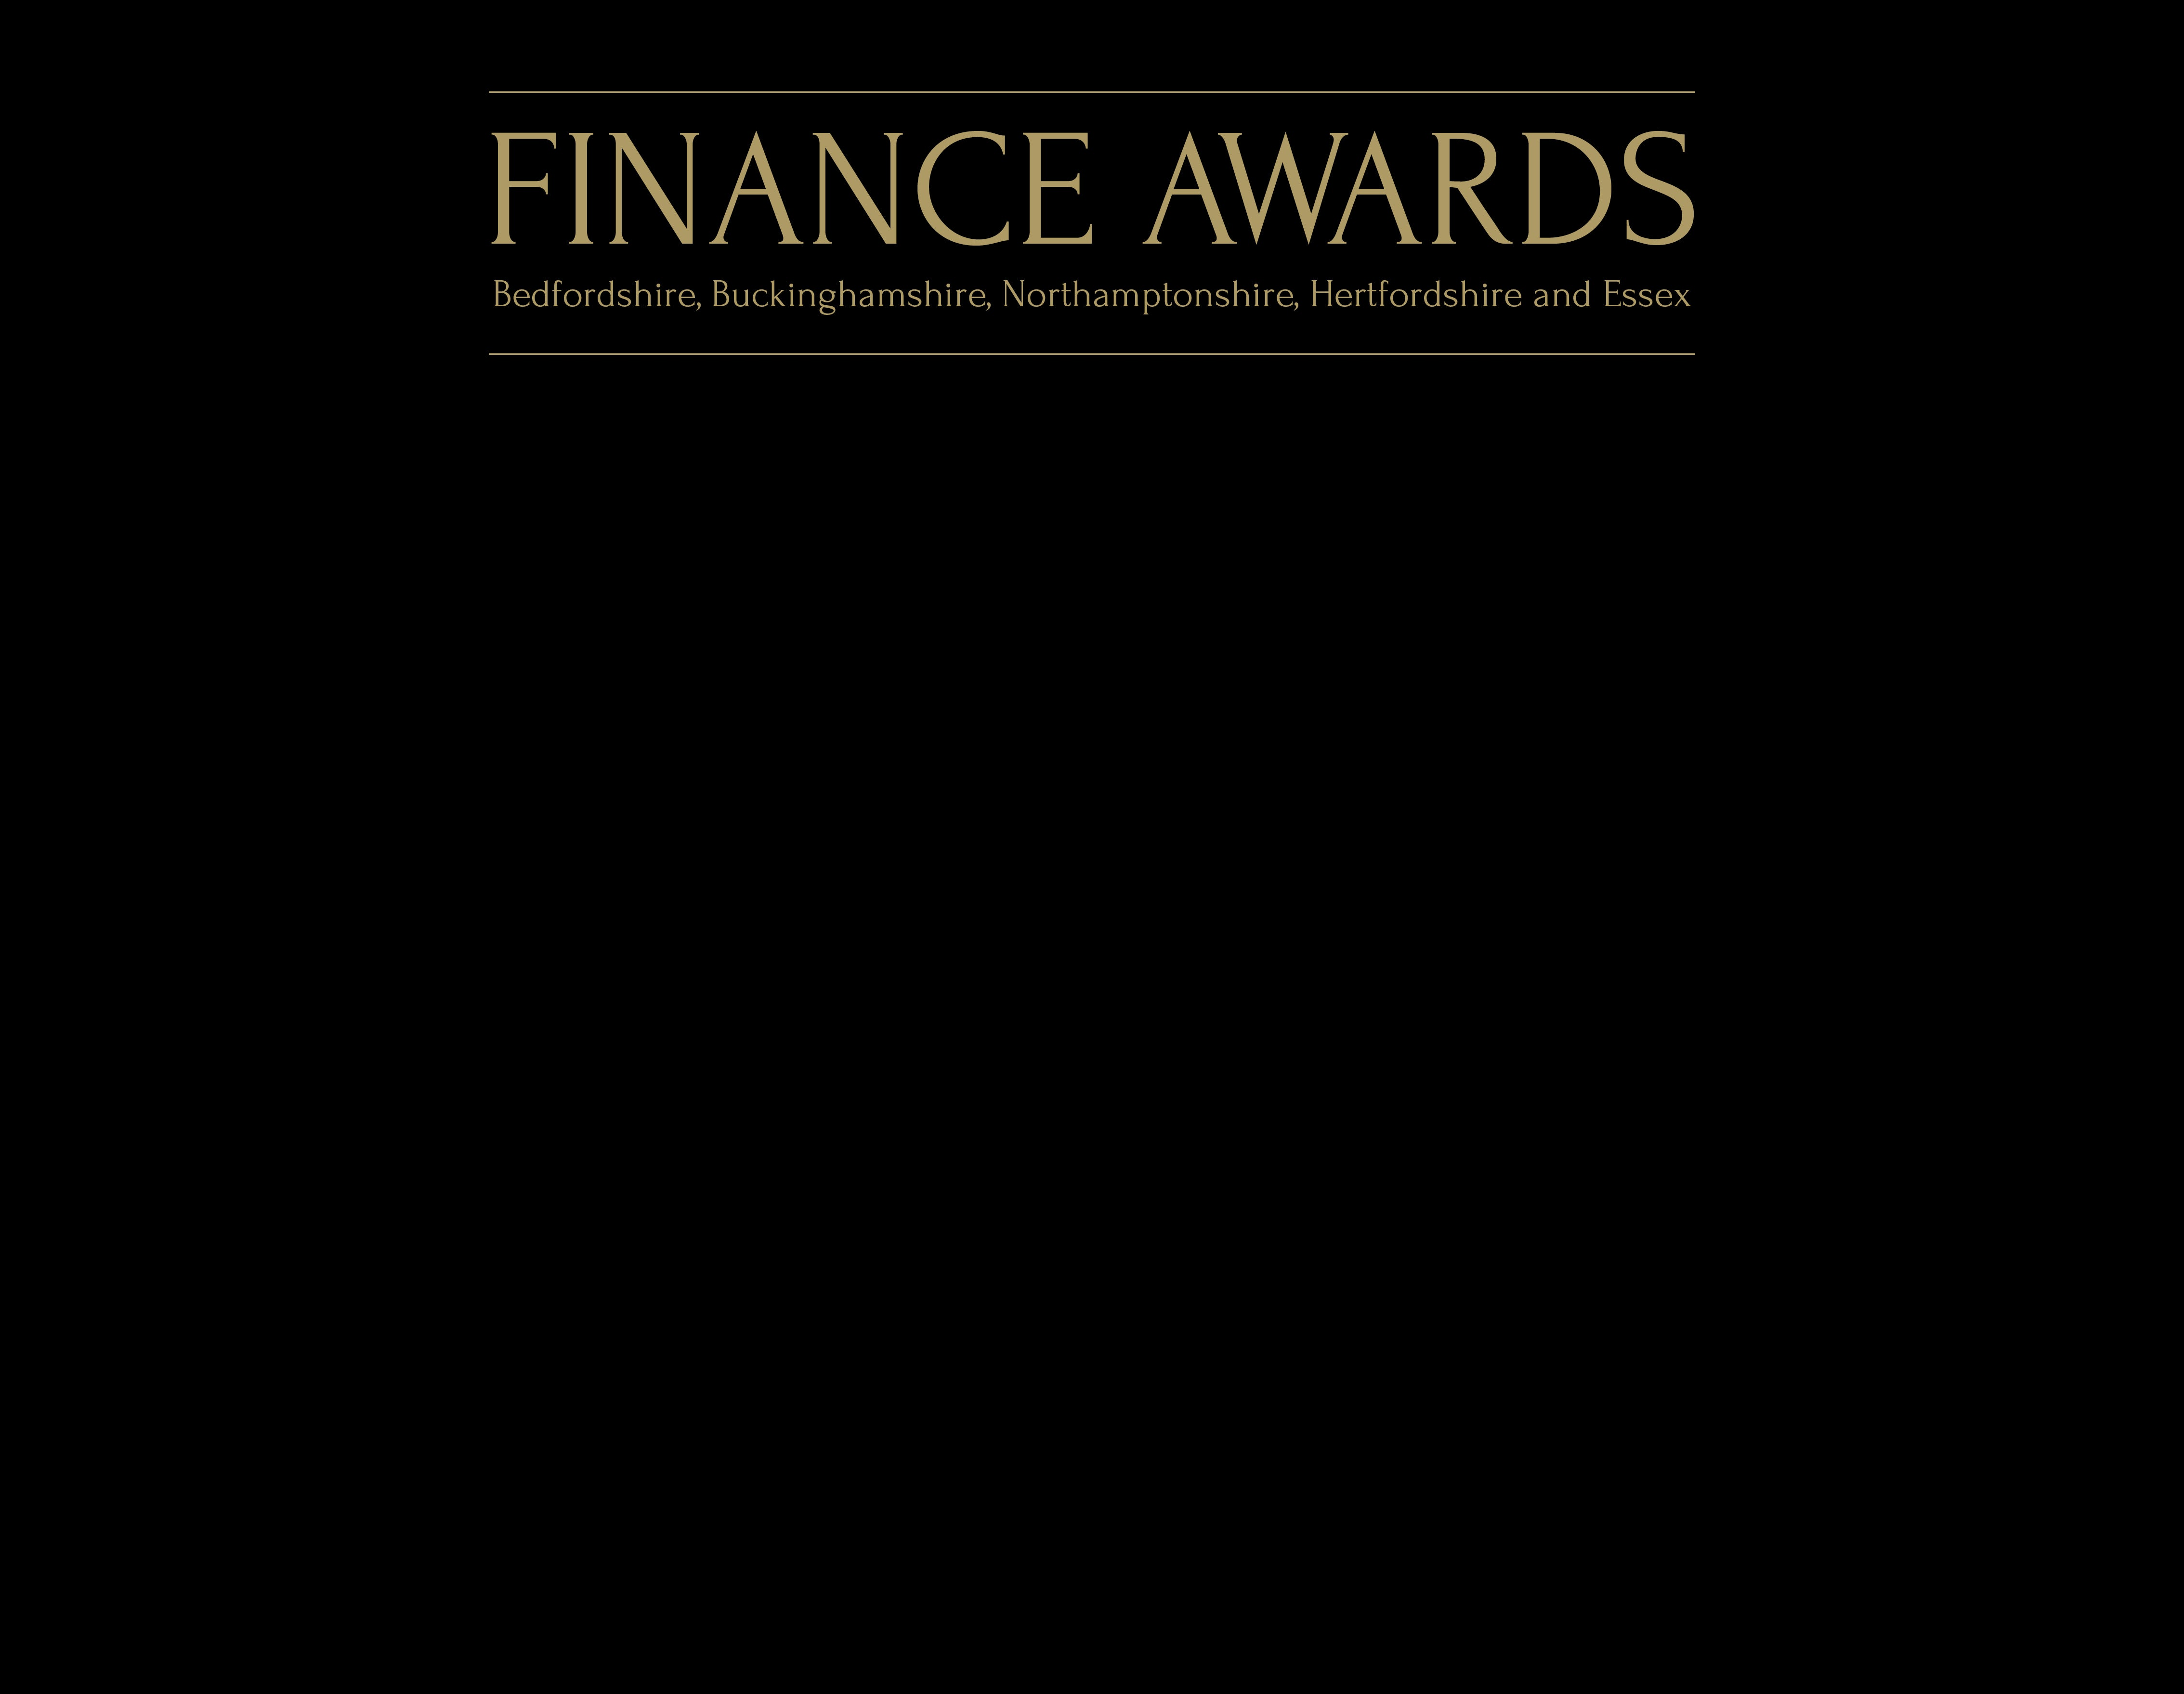 Finance Awards logo with a black background and a gold boarder and black banner